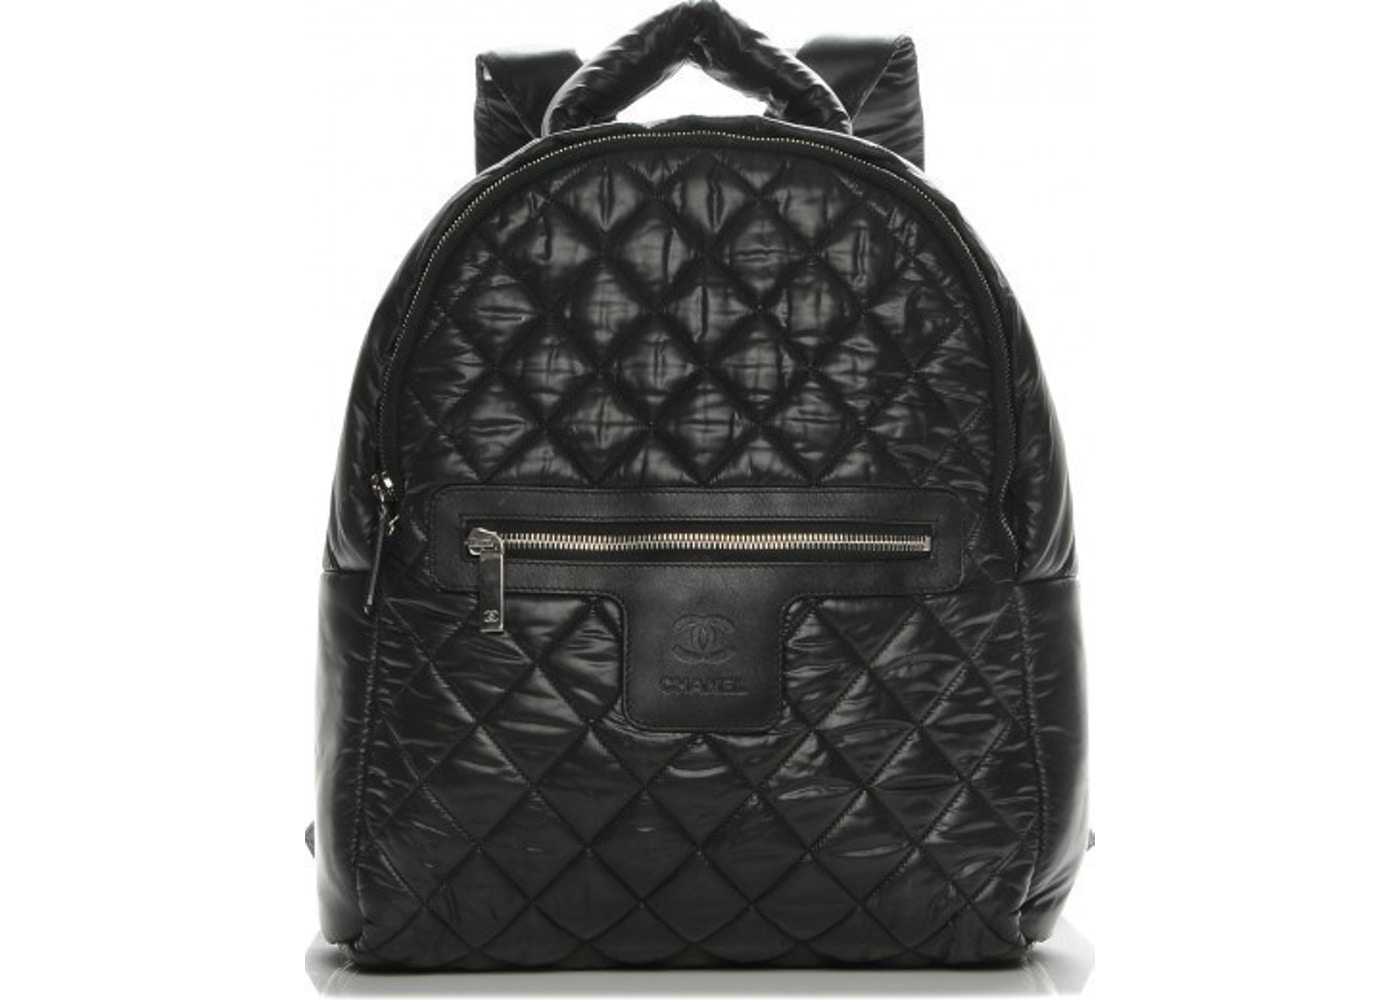 7709edc96ff6 Chanel Coco Cocoon Backpack Quilted Nylon Black